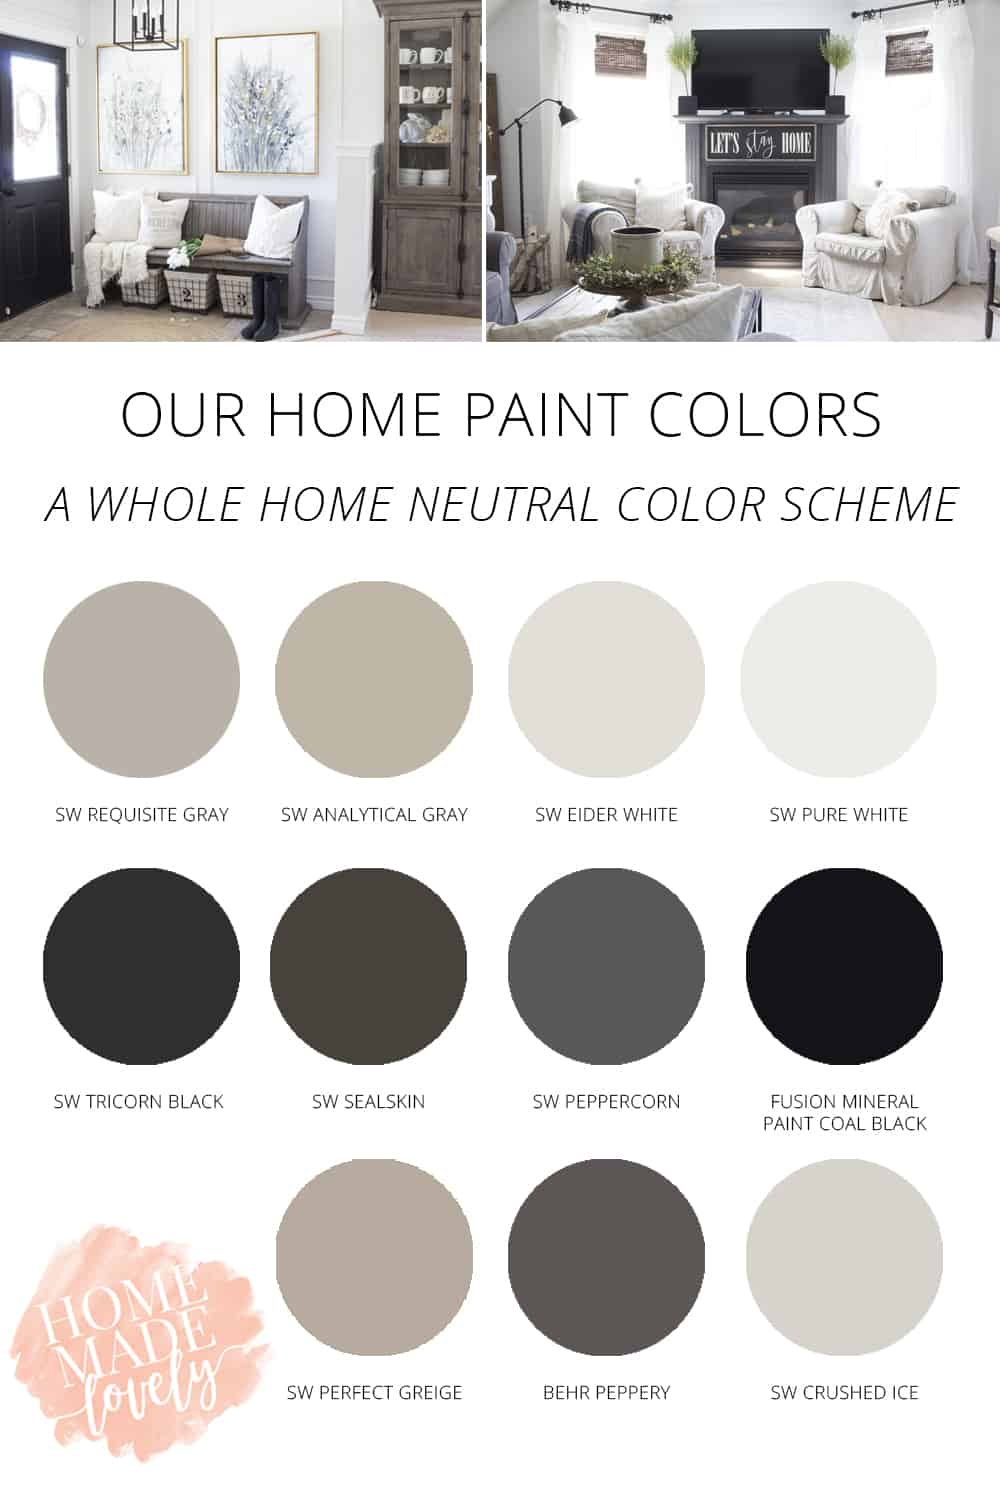 Our Home S Paint Colors A Neutral Whole Home Color Scheme